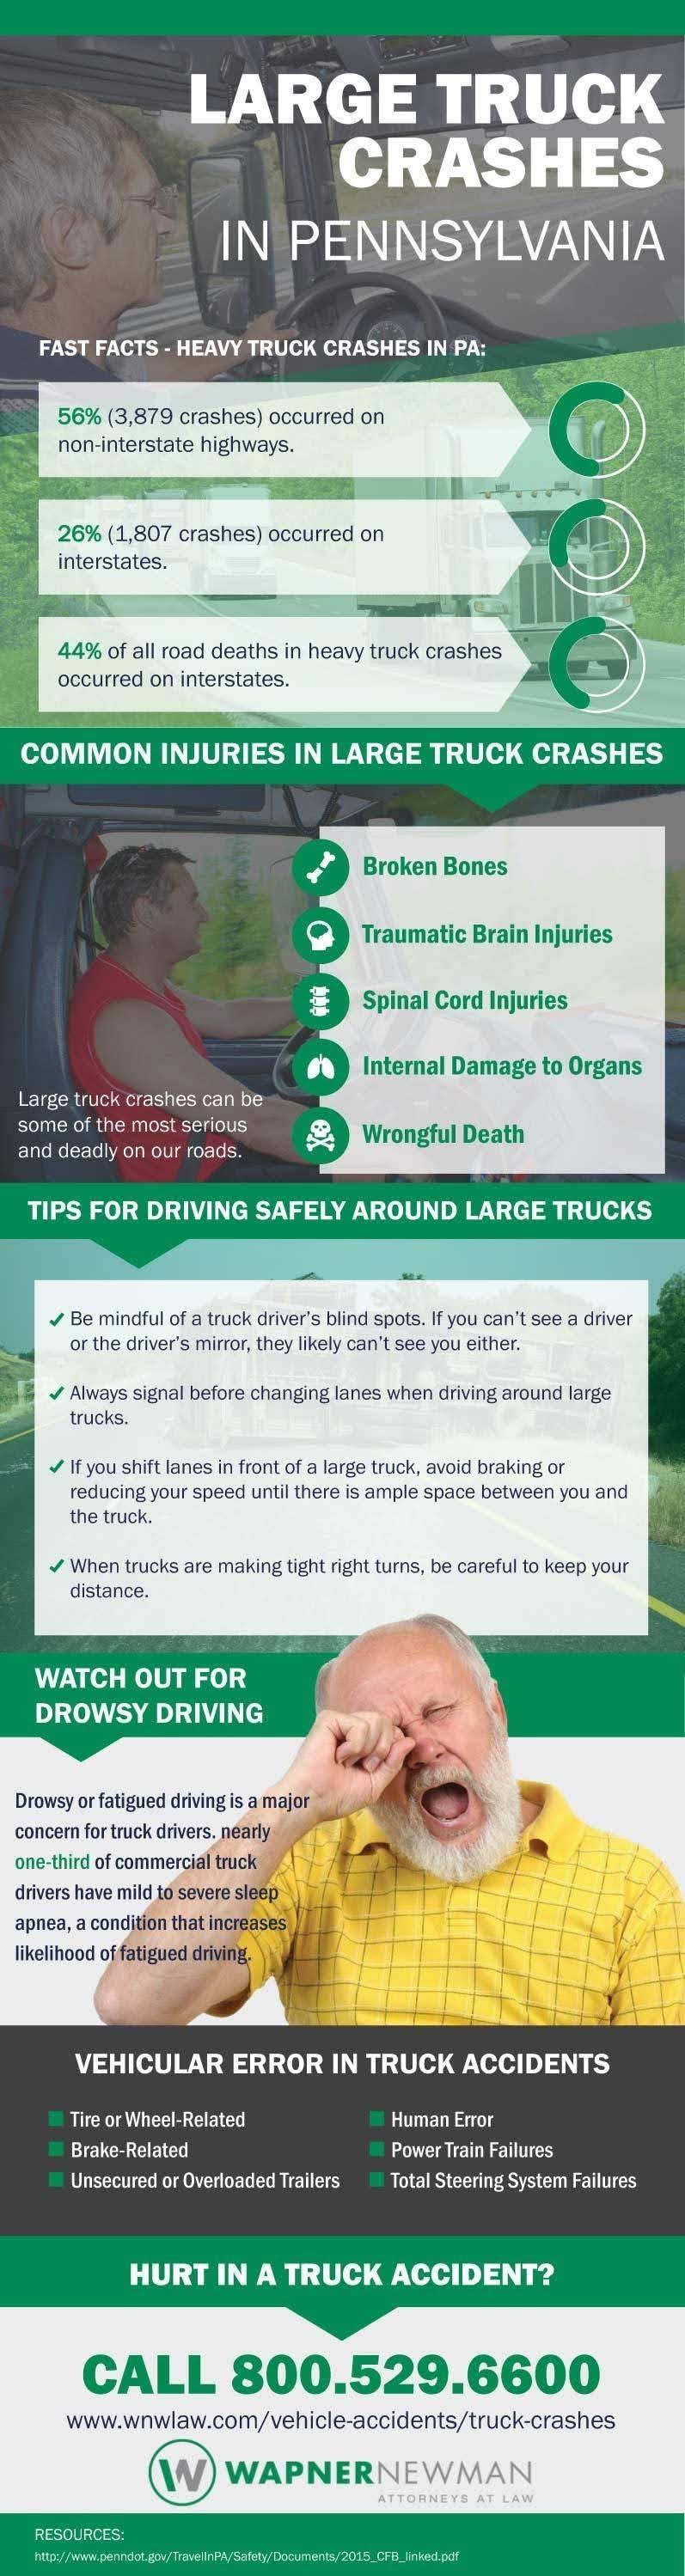 Larger Truck Crashes In Pennsylvania #infographic